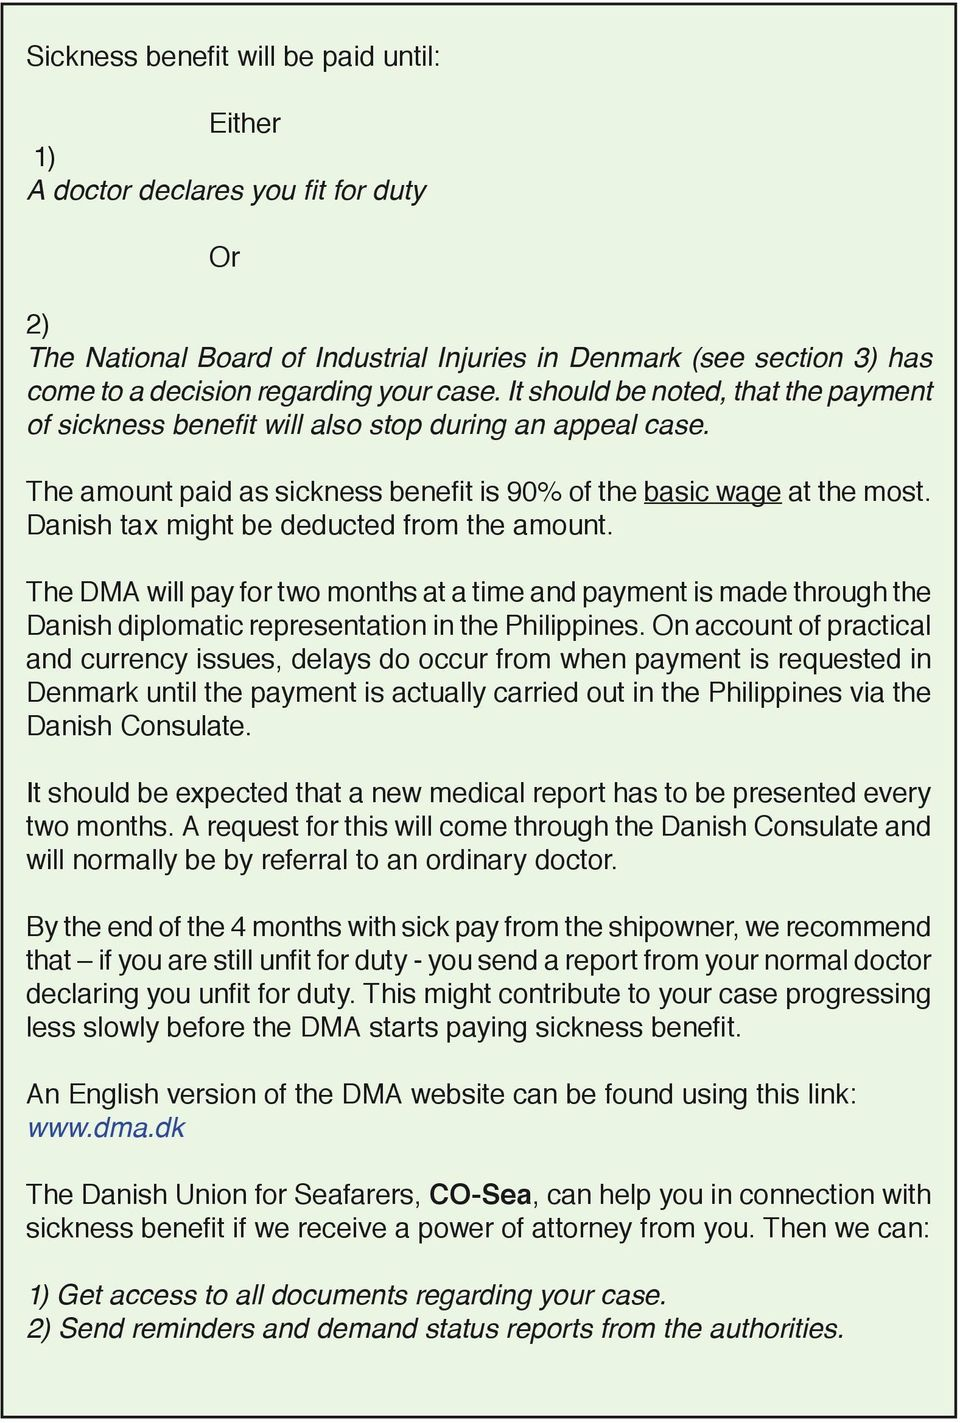 Danish tax might be deducted from the amount. The DMA will pay for two months at a time and payment is made through the Danish diplomatic representation in the Philippines.